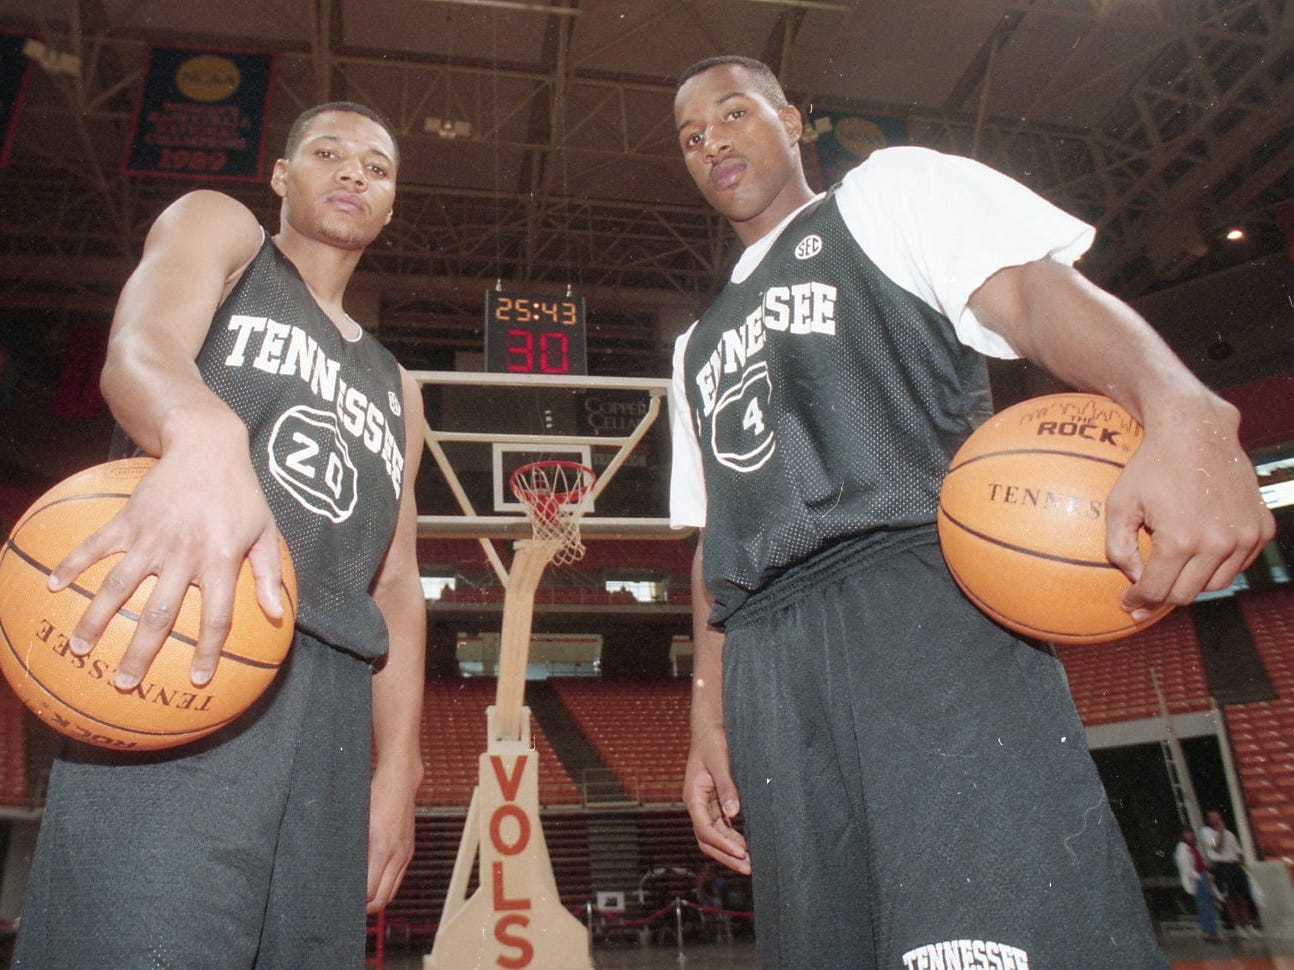 Shane Williams and Damon Johnson are freshman players for Tennessee. They played together in high school in Bristol. October 1994.